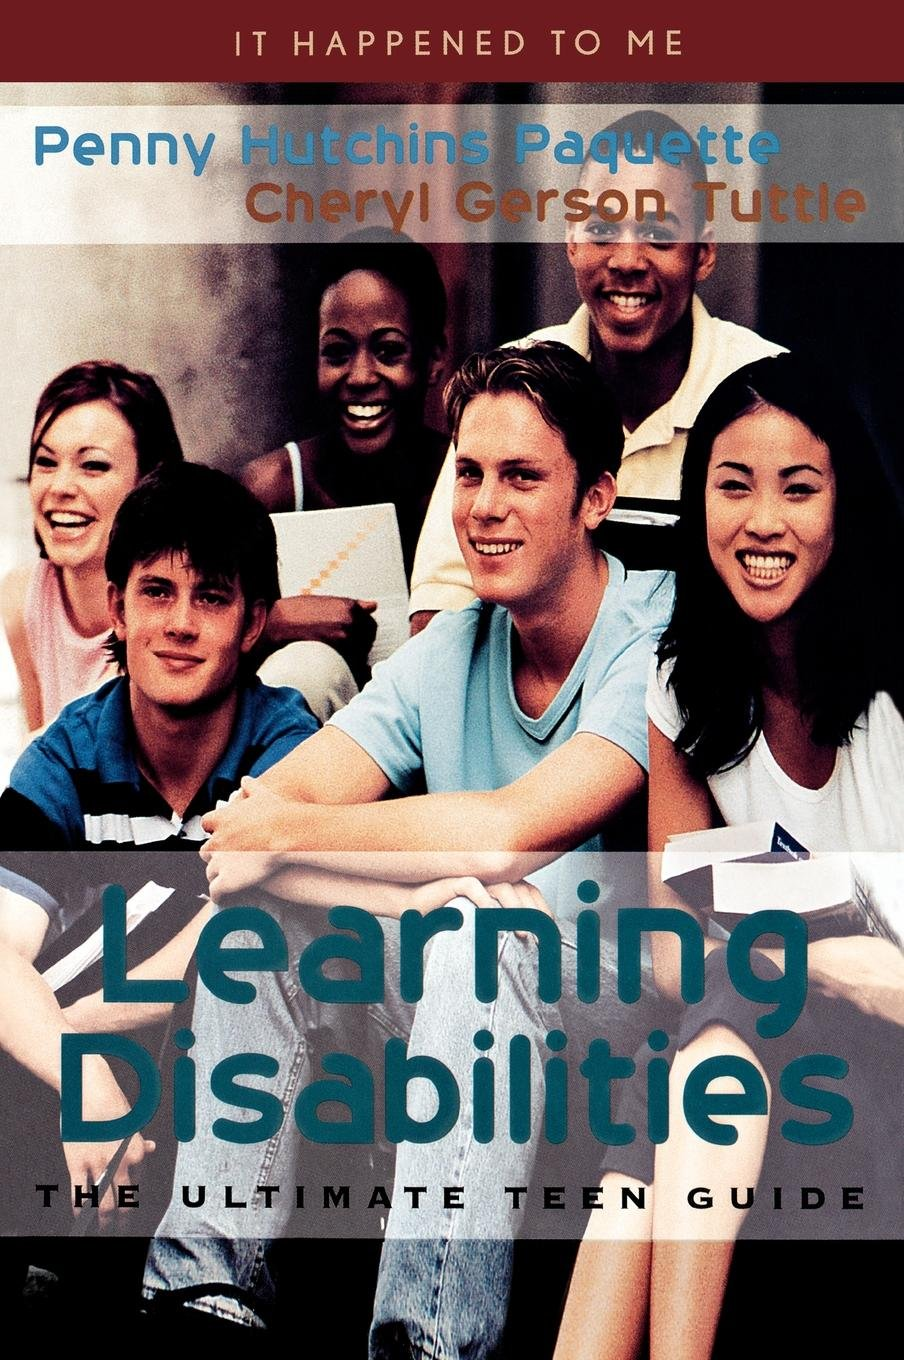 Download Learning Disabilities: The Ultimate Teen Guide (It Happened to Me) PDF